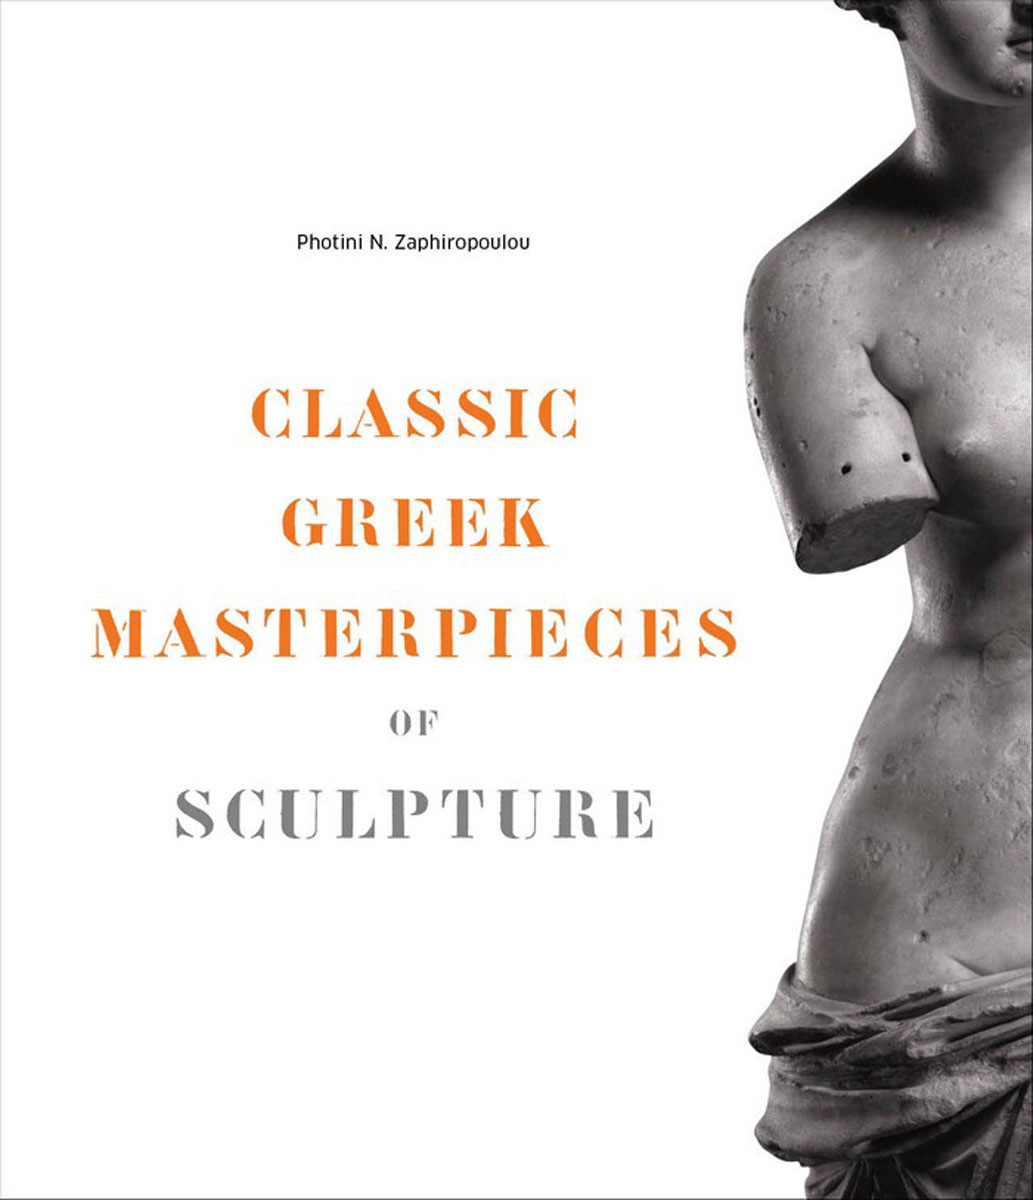 Classic Greek Masterpieces of Sculpture 1000 masterpieces of decorative art